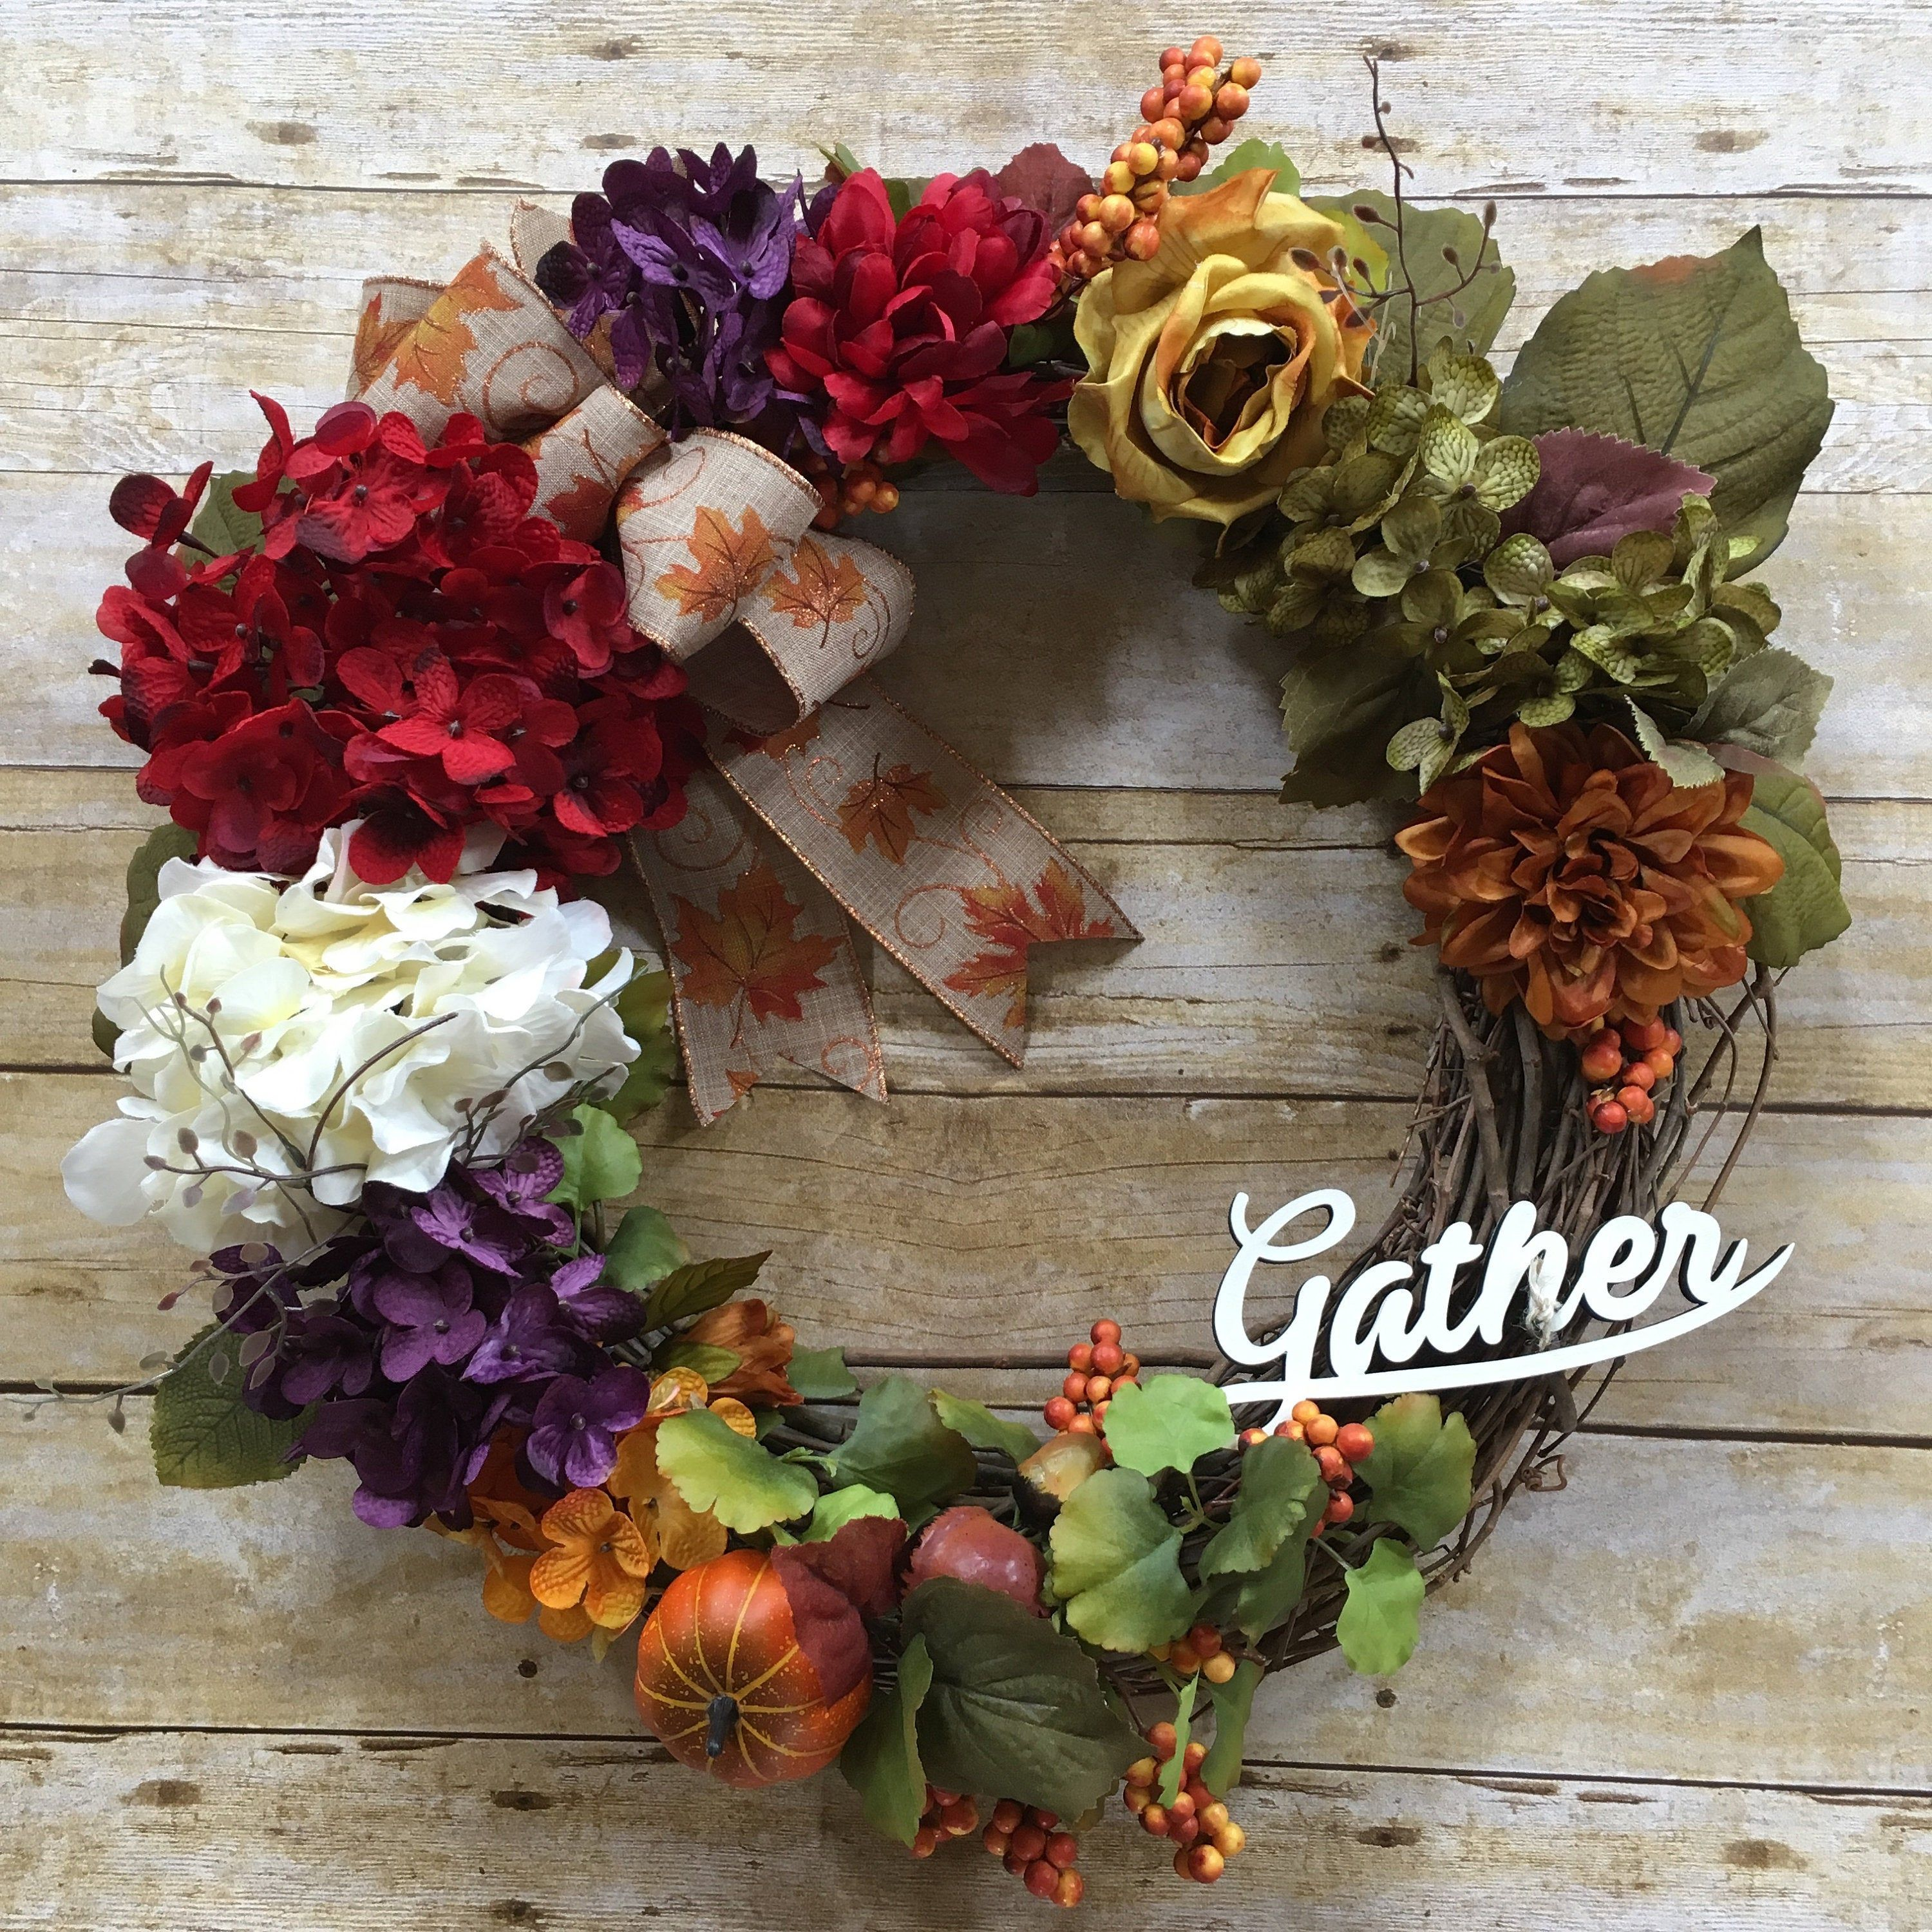 Photo of Fall wreath, fall wine wreath, year round wreath, front door wreath, fall decor, thanksgiving decor, gift for her, collect characters